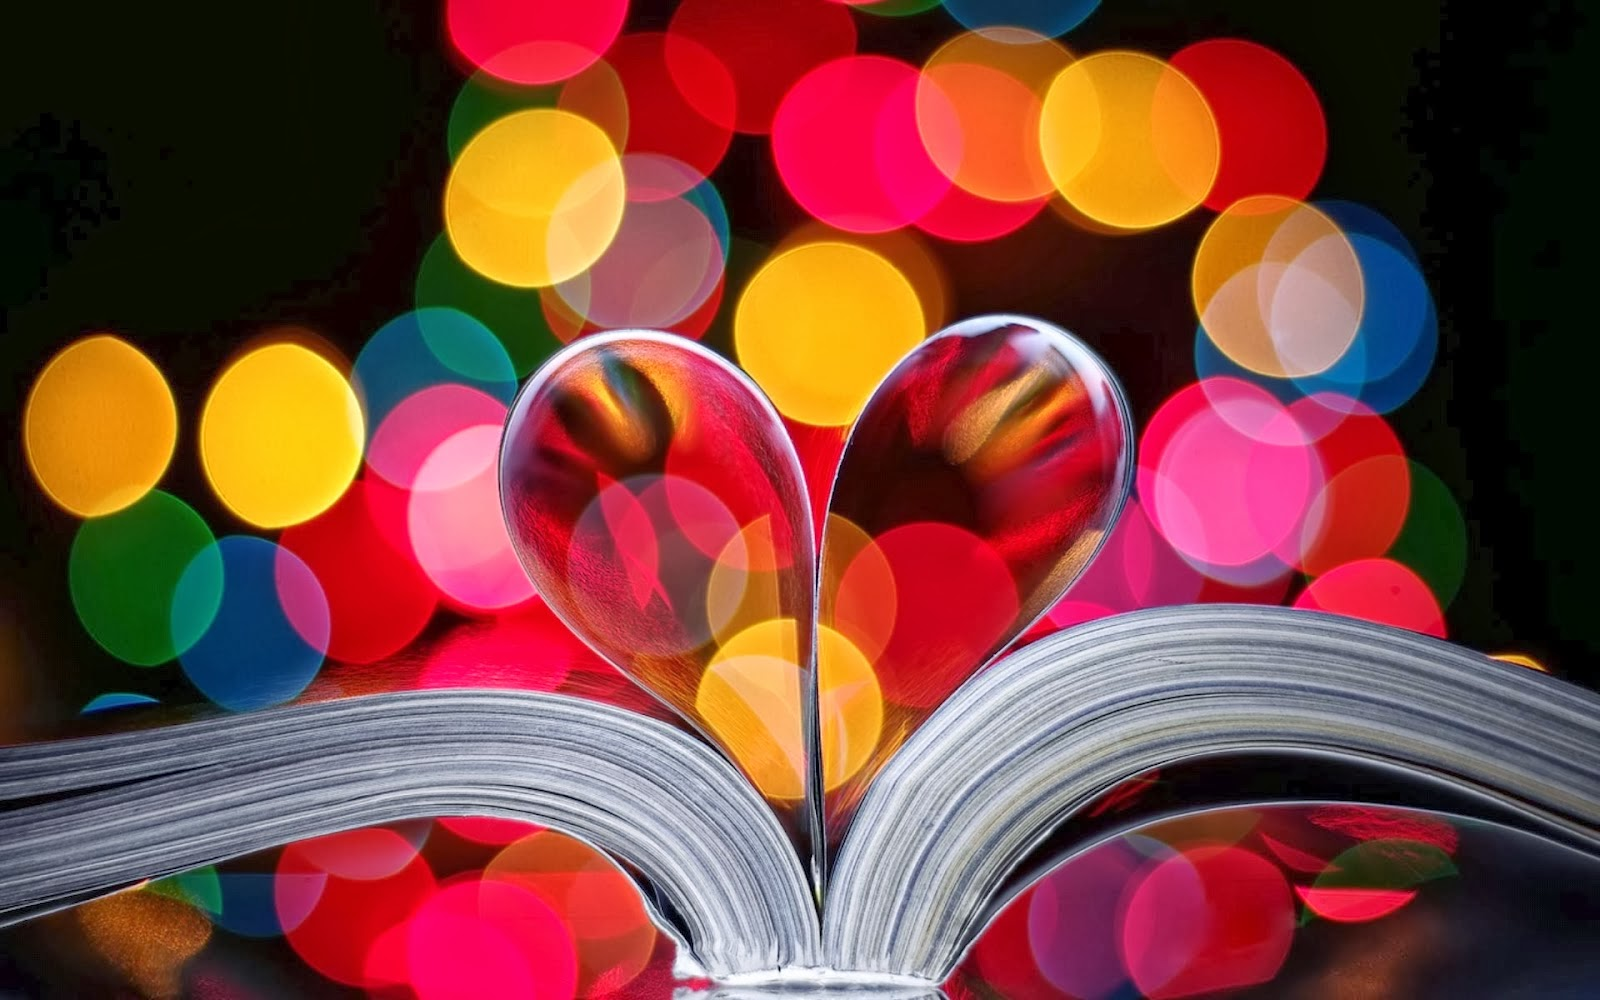 Book Heart Covers